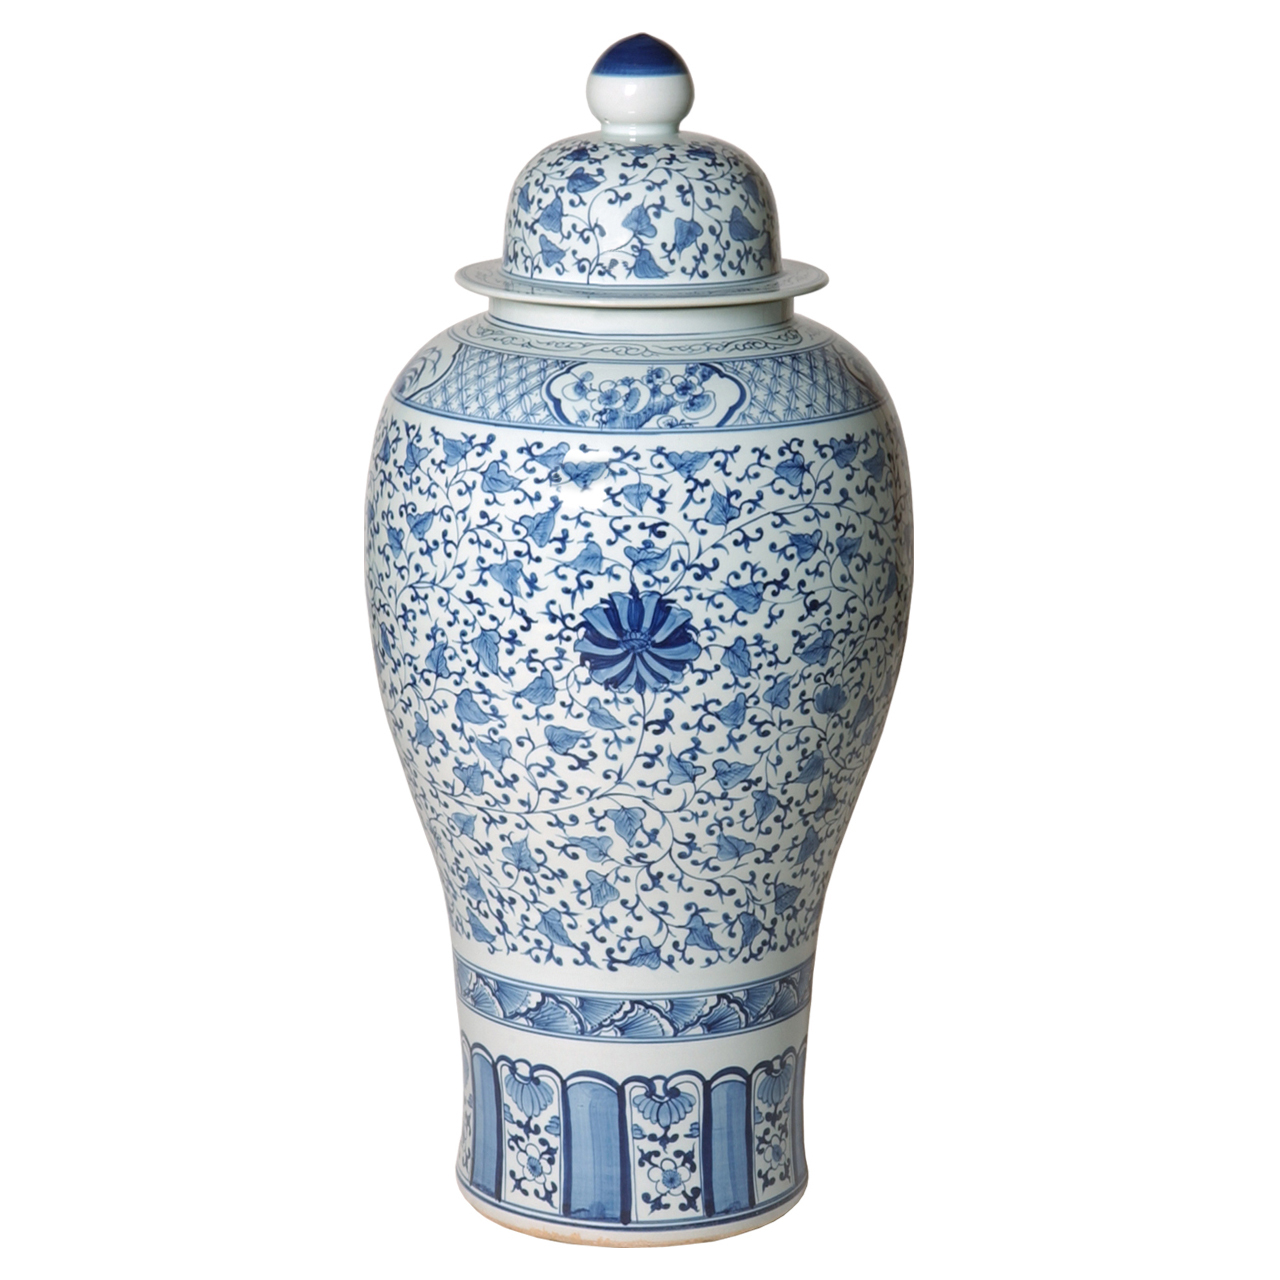 Foliage Global Bazaar Blue Ceramic Ginger Jar - 48H